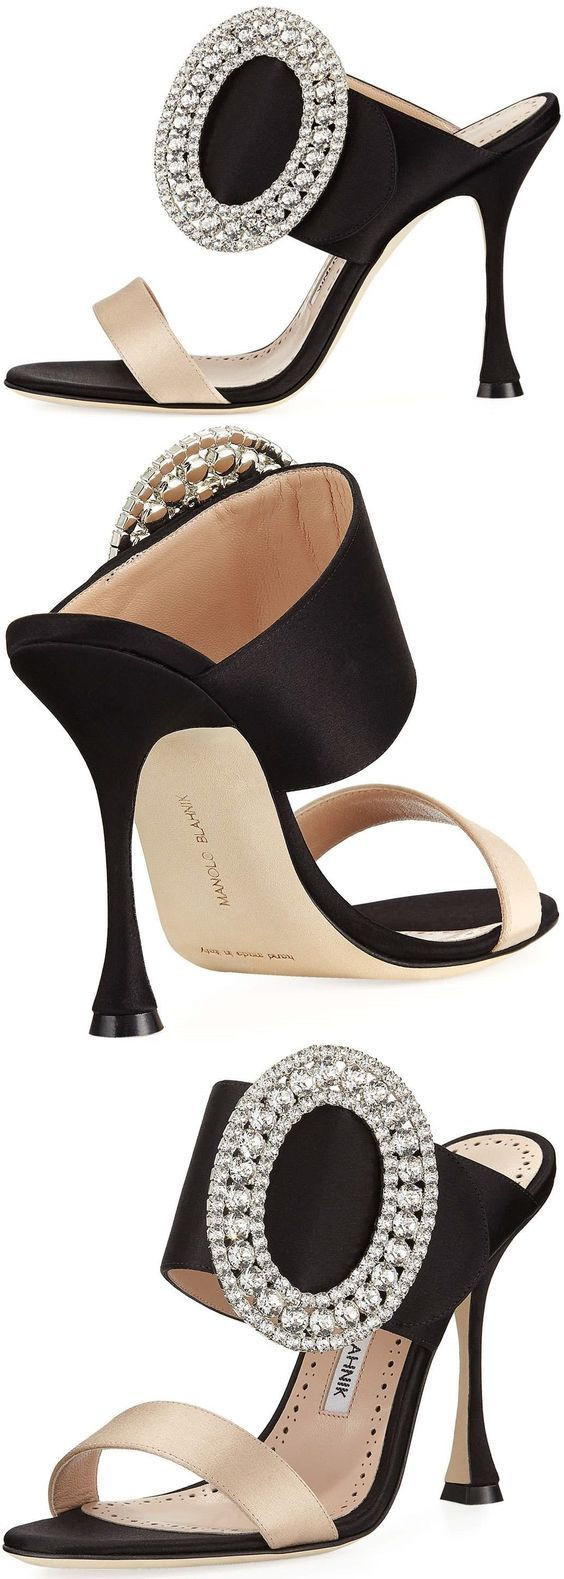 Yule style!! Noel Christmas New Year's Eve!! Party shoes to dance the night away! Black and cream with a glittered oversized buckle! For a Little Black Dress! Manolo Blahnik #manoloblahnikheelsfashion